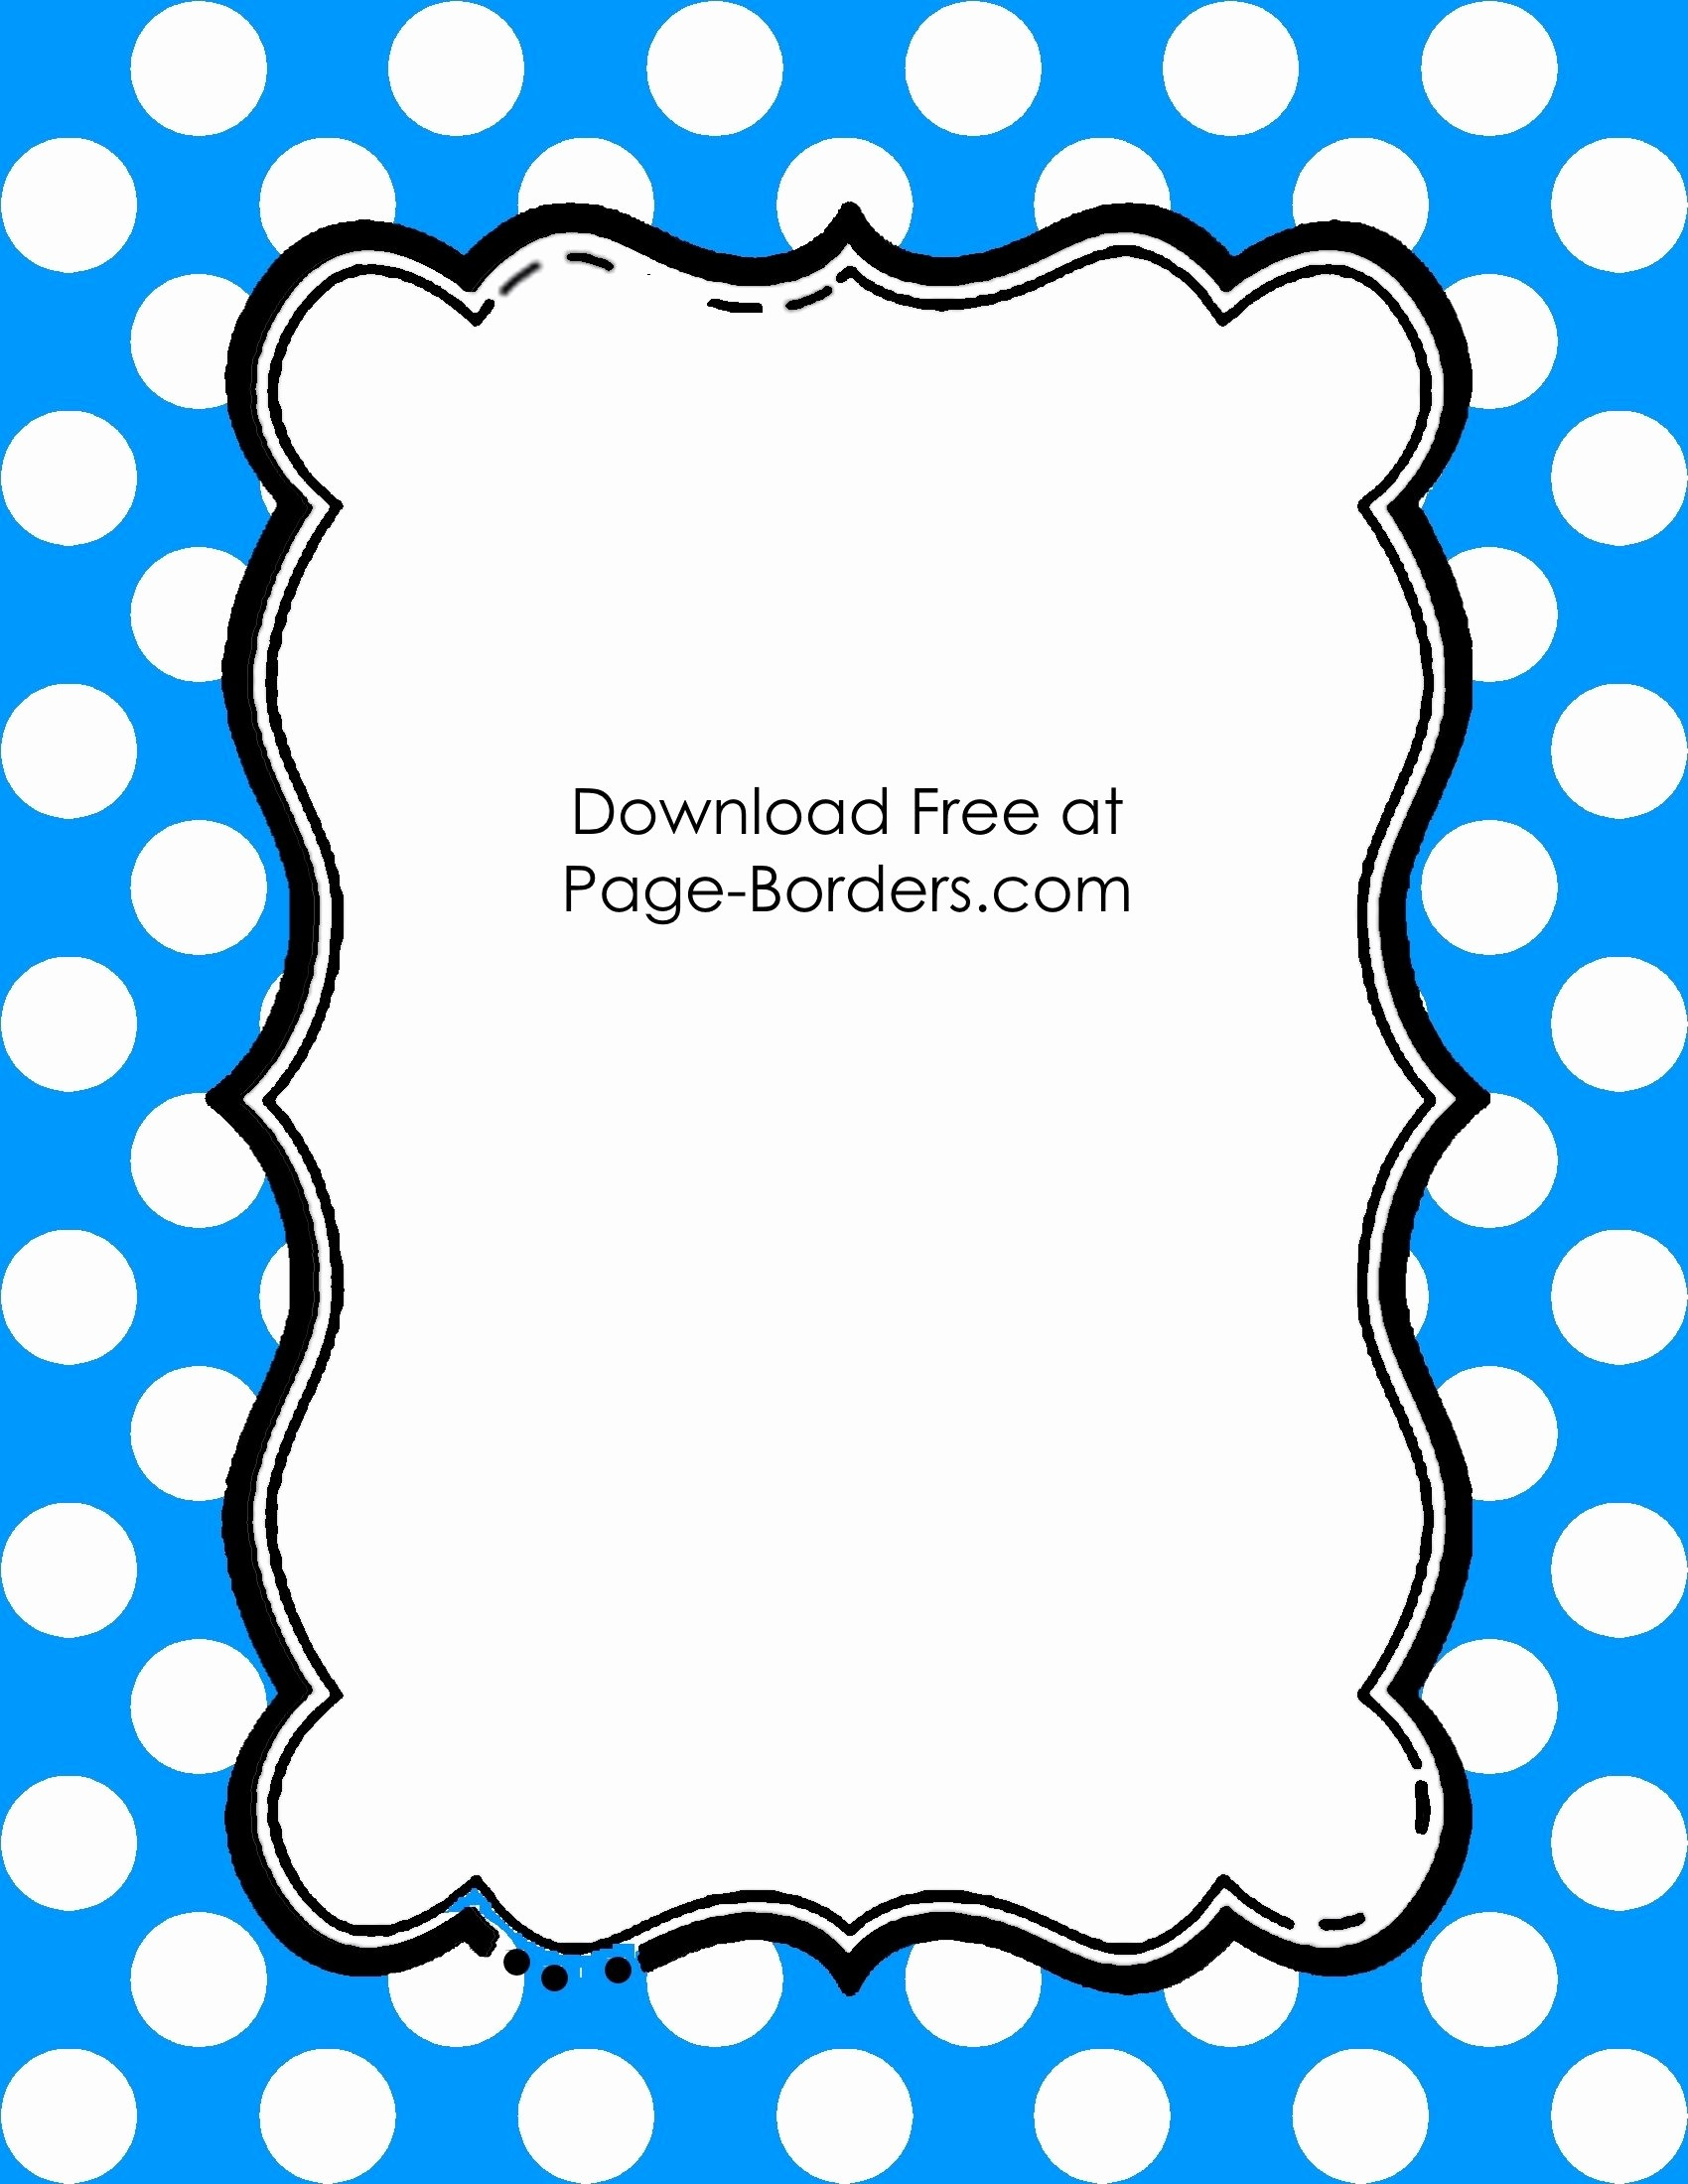 Polka Dot Template for Word New Free Polka Dot Border Templates In 16 Colors